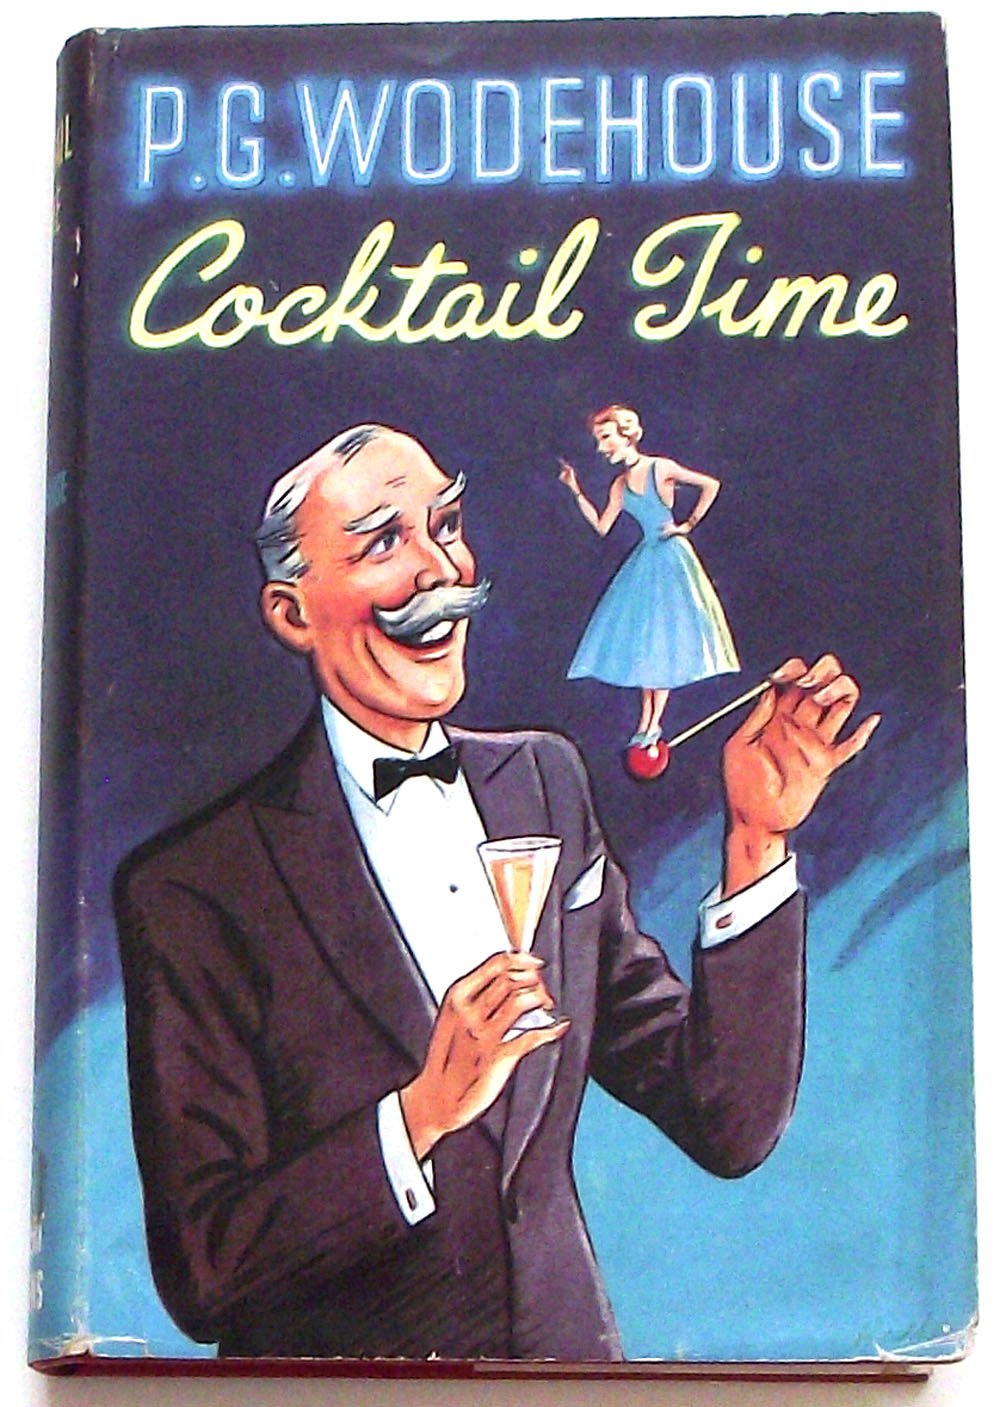 P.G. Wodehouse Cocktail Time First Edition 1958